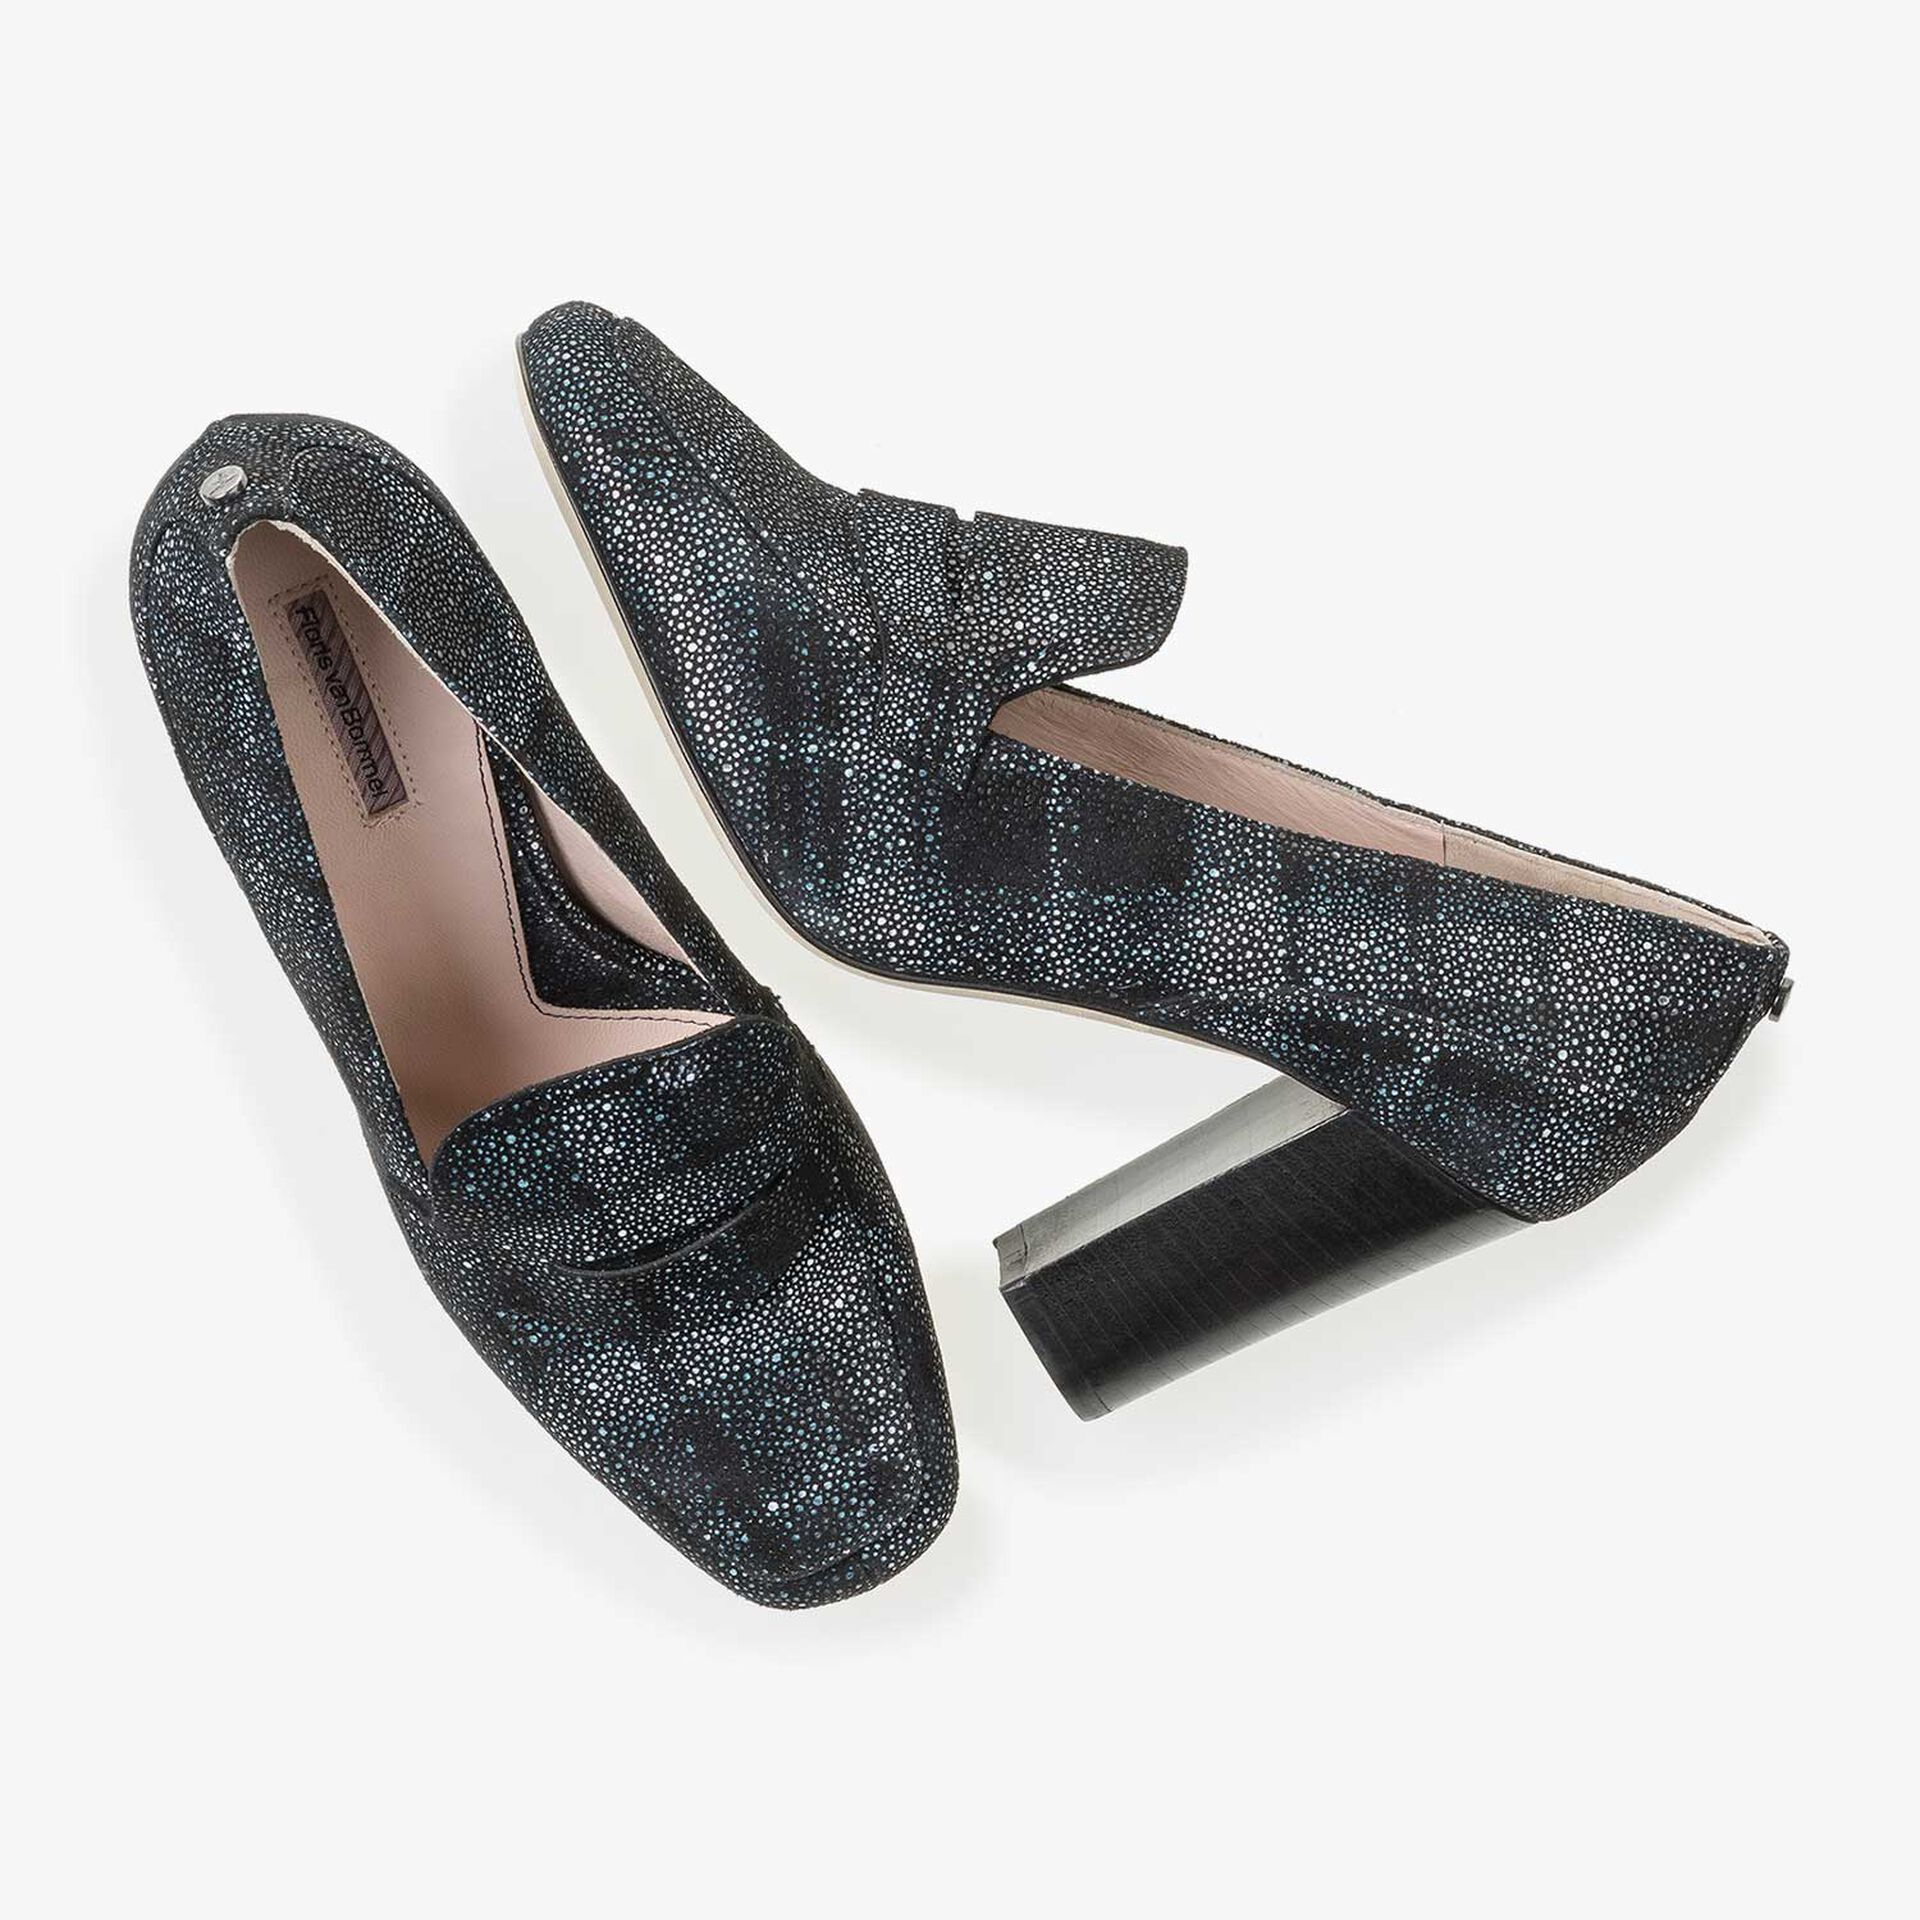 Leather high heels with blue-black check pattern